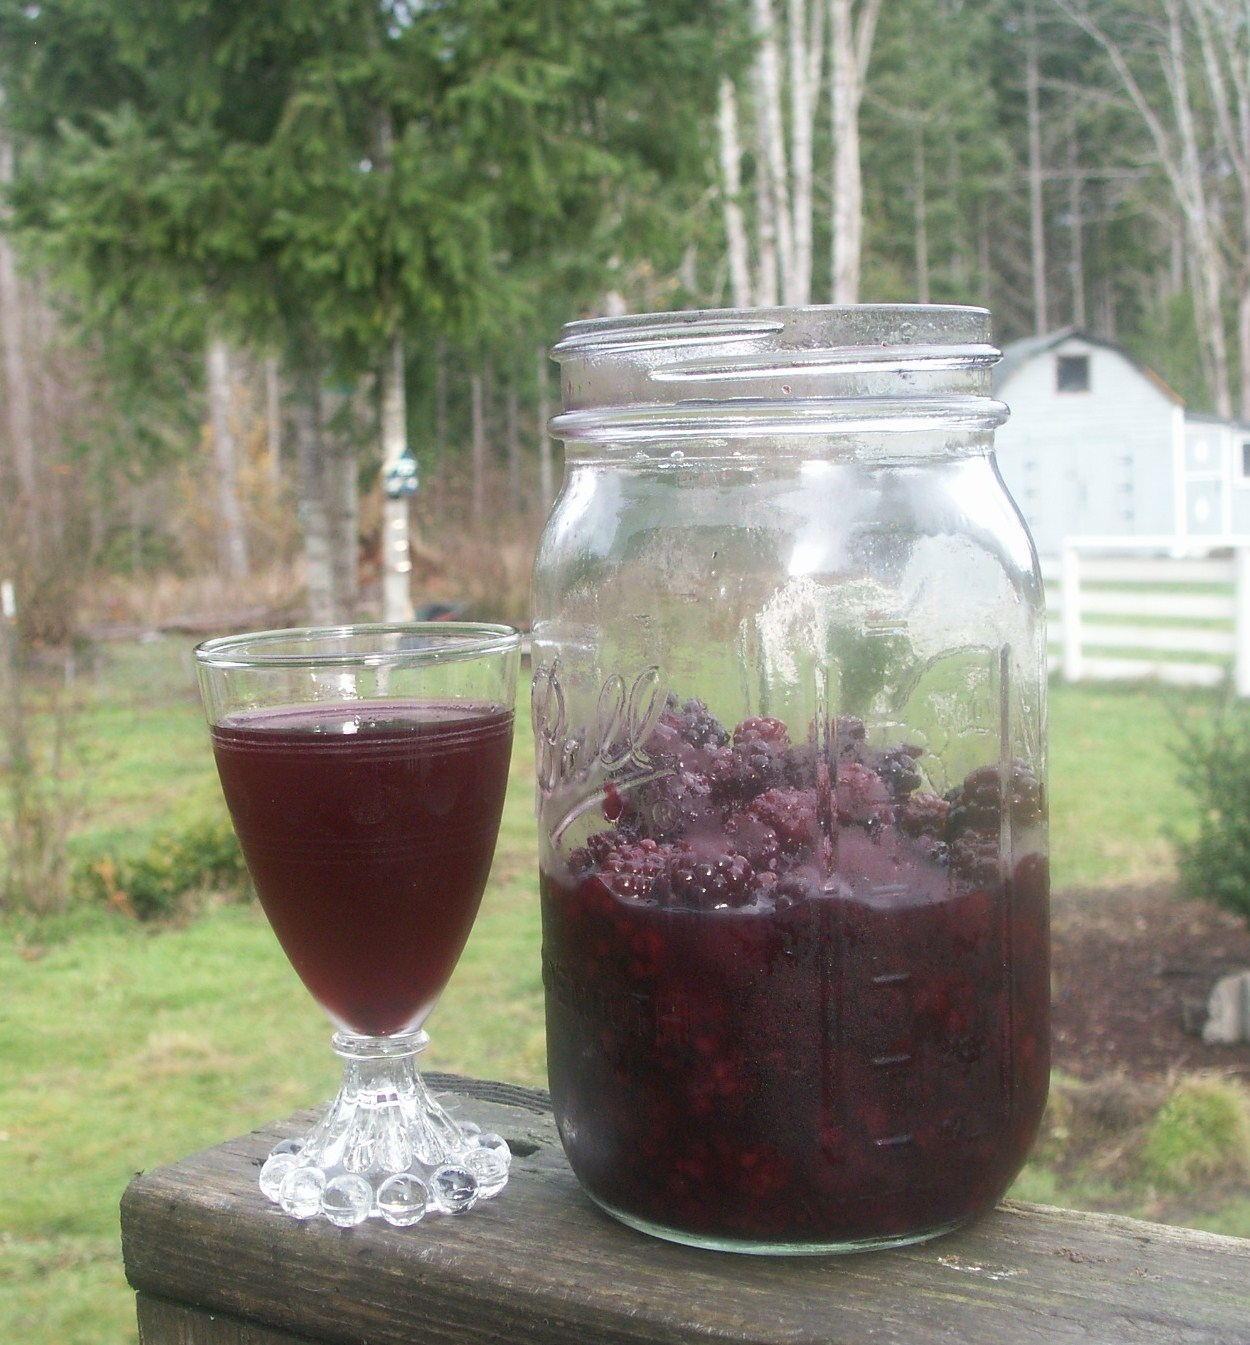 The Alchemist: Homemade Blackberry Liqueur